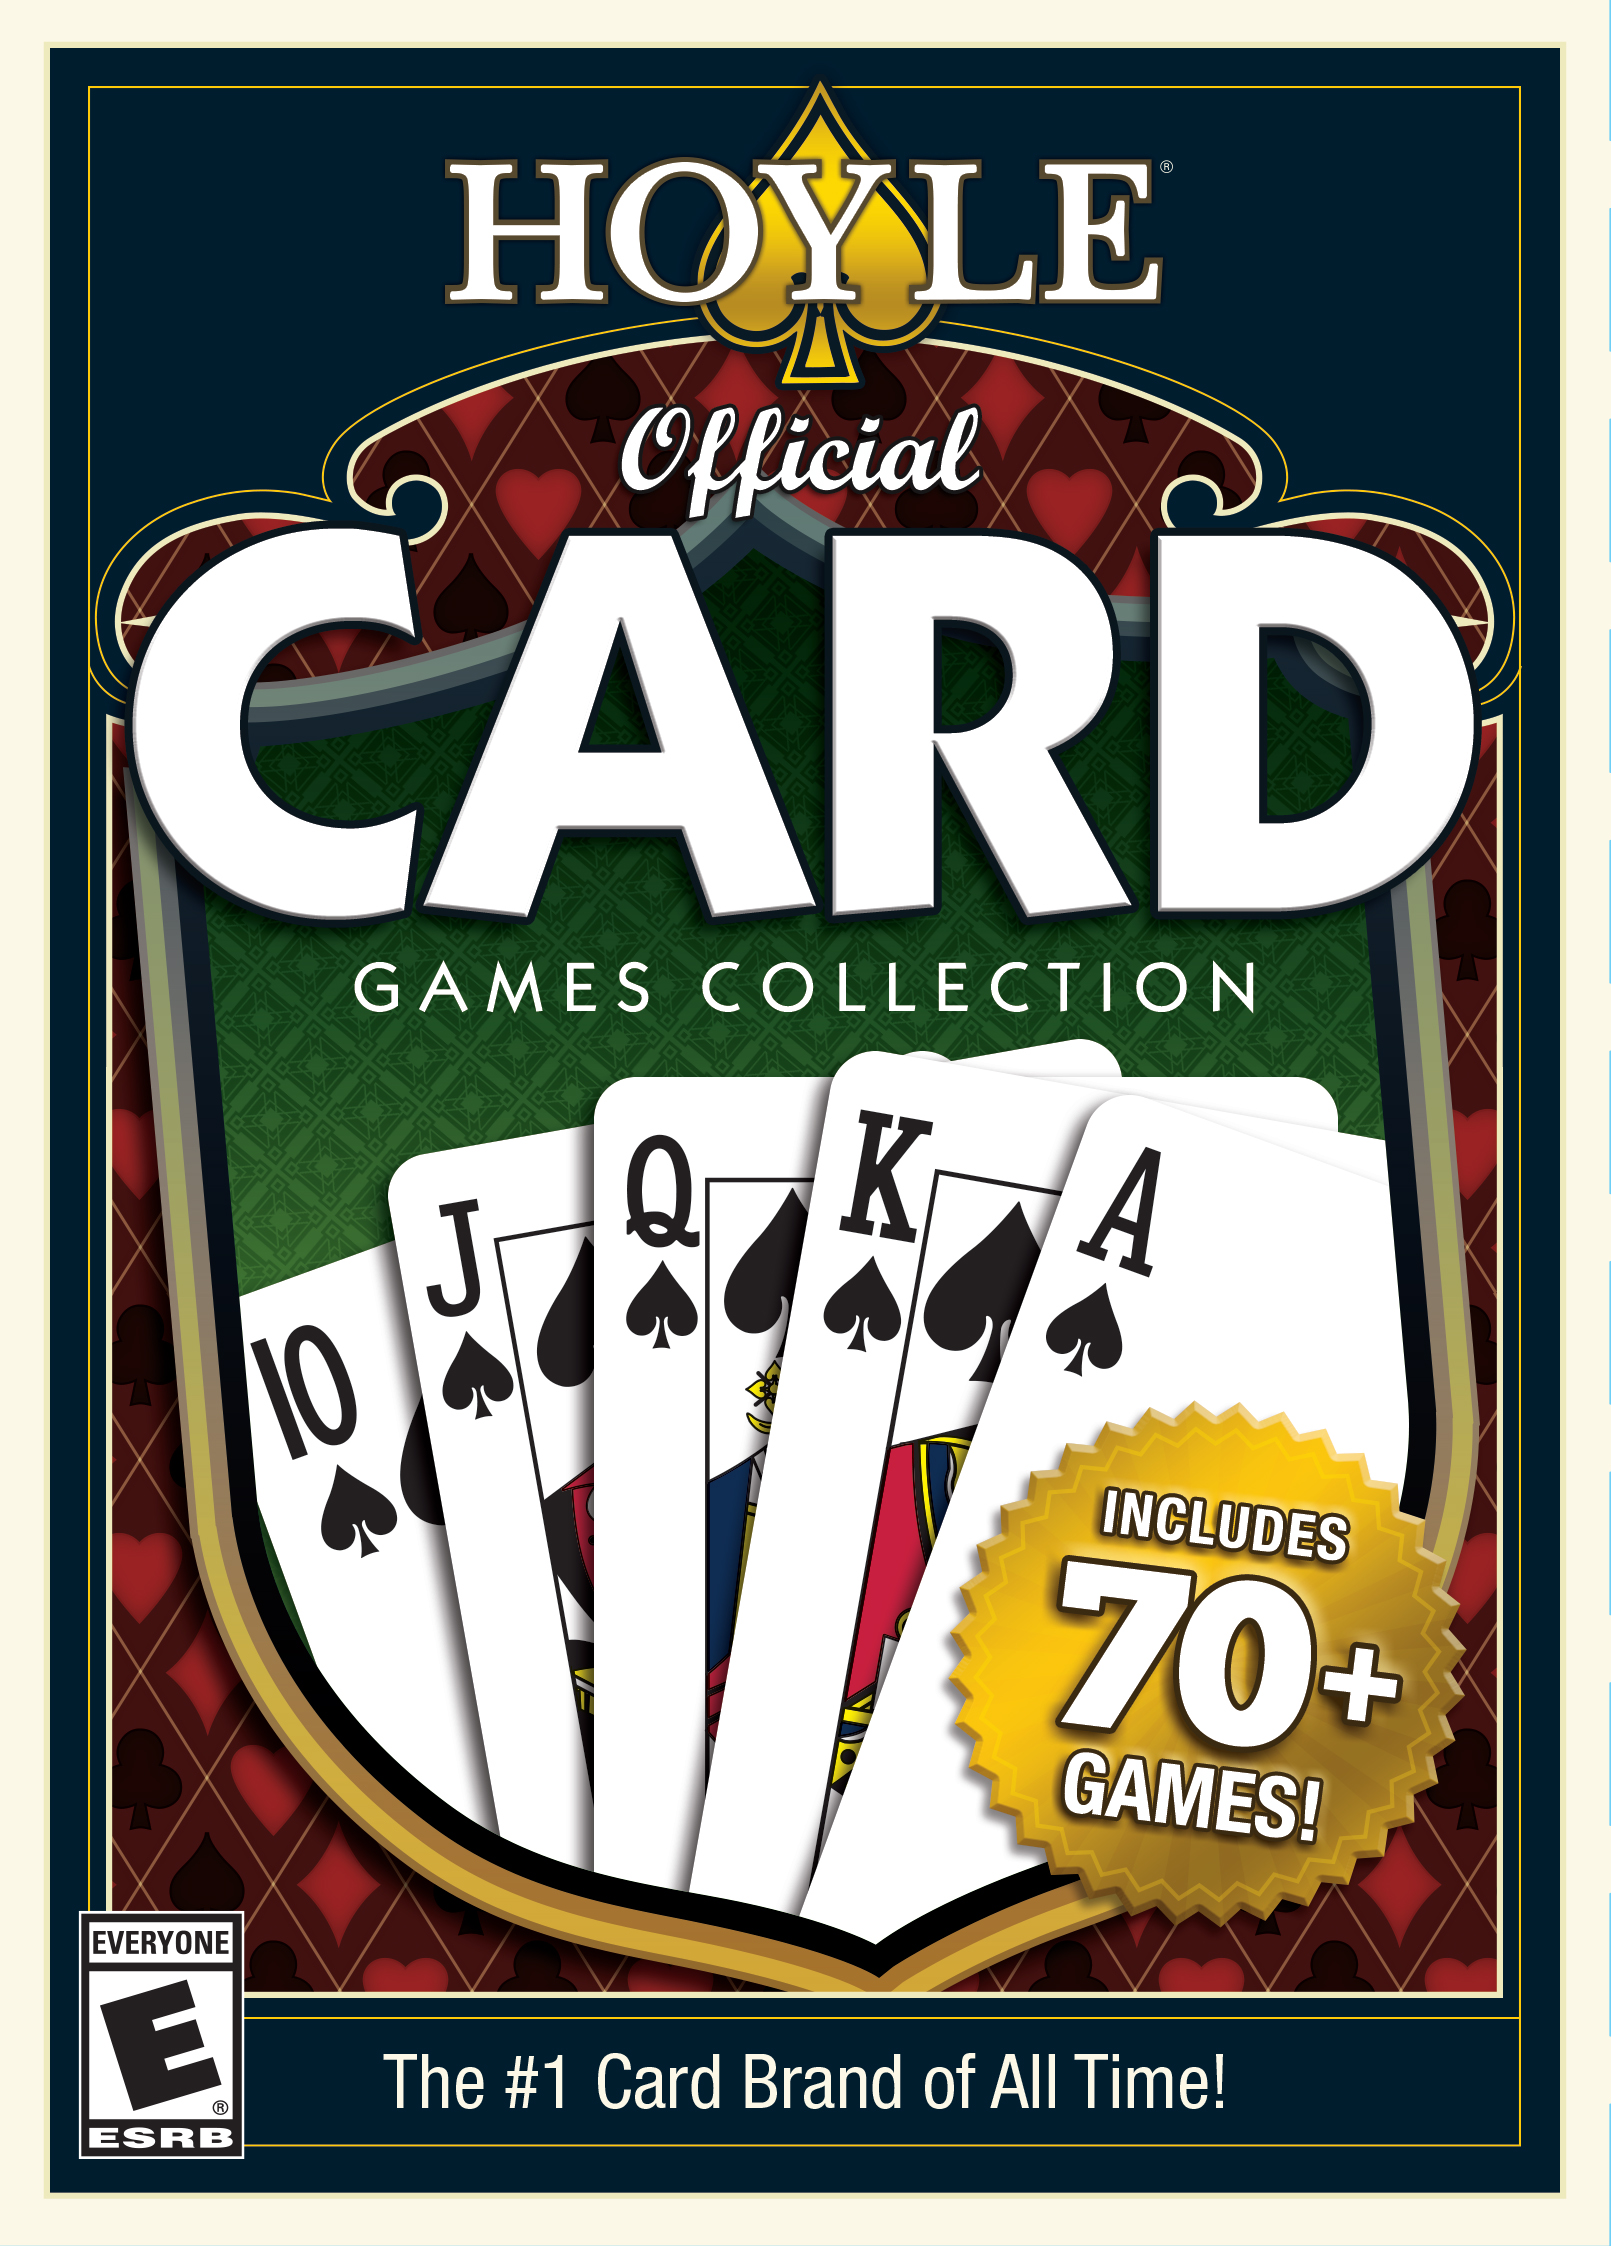 hoyle casino card game rules - 3